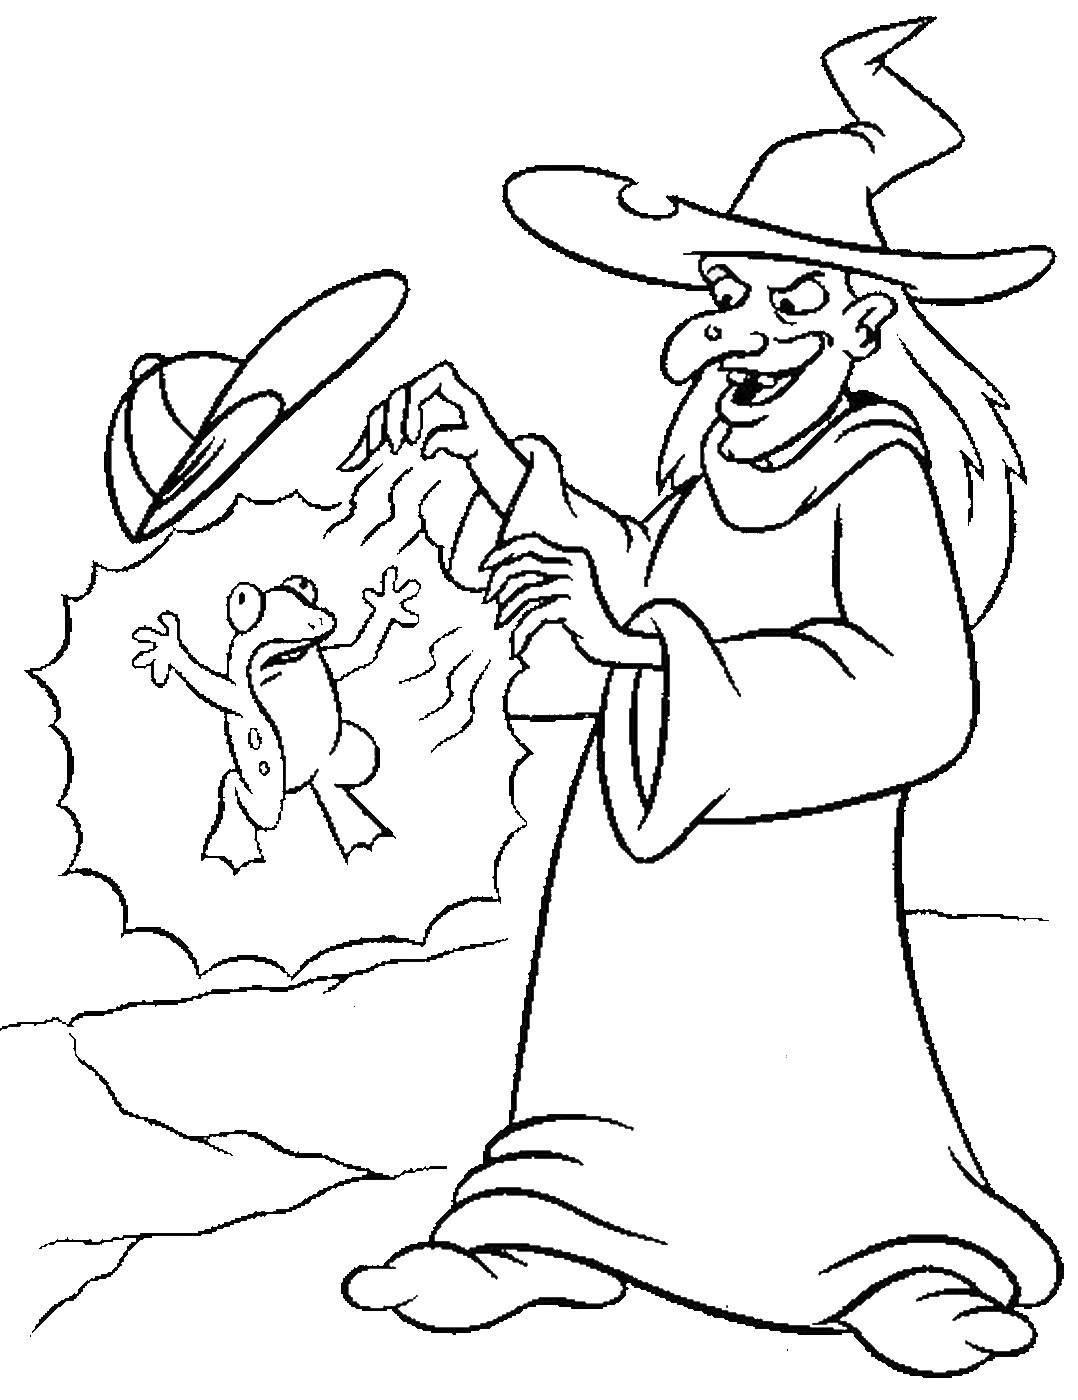 wizard of oz pictures to print scarecrow from wizard of oz kids printable coloring pages print wizard oz pictures of to